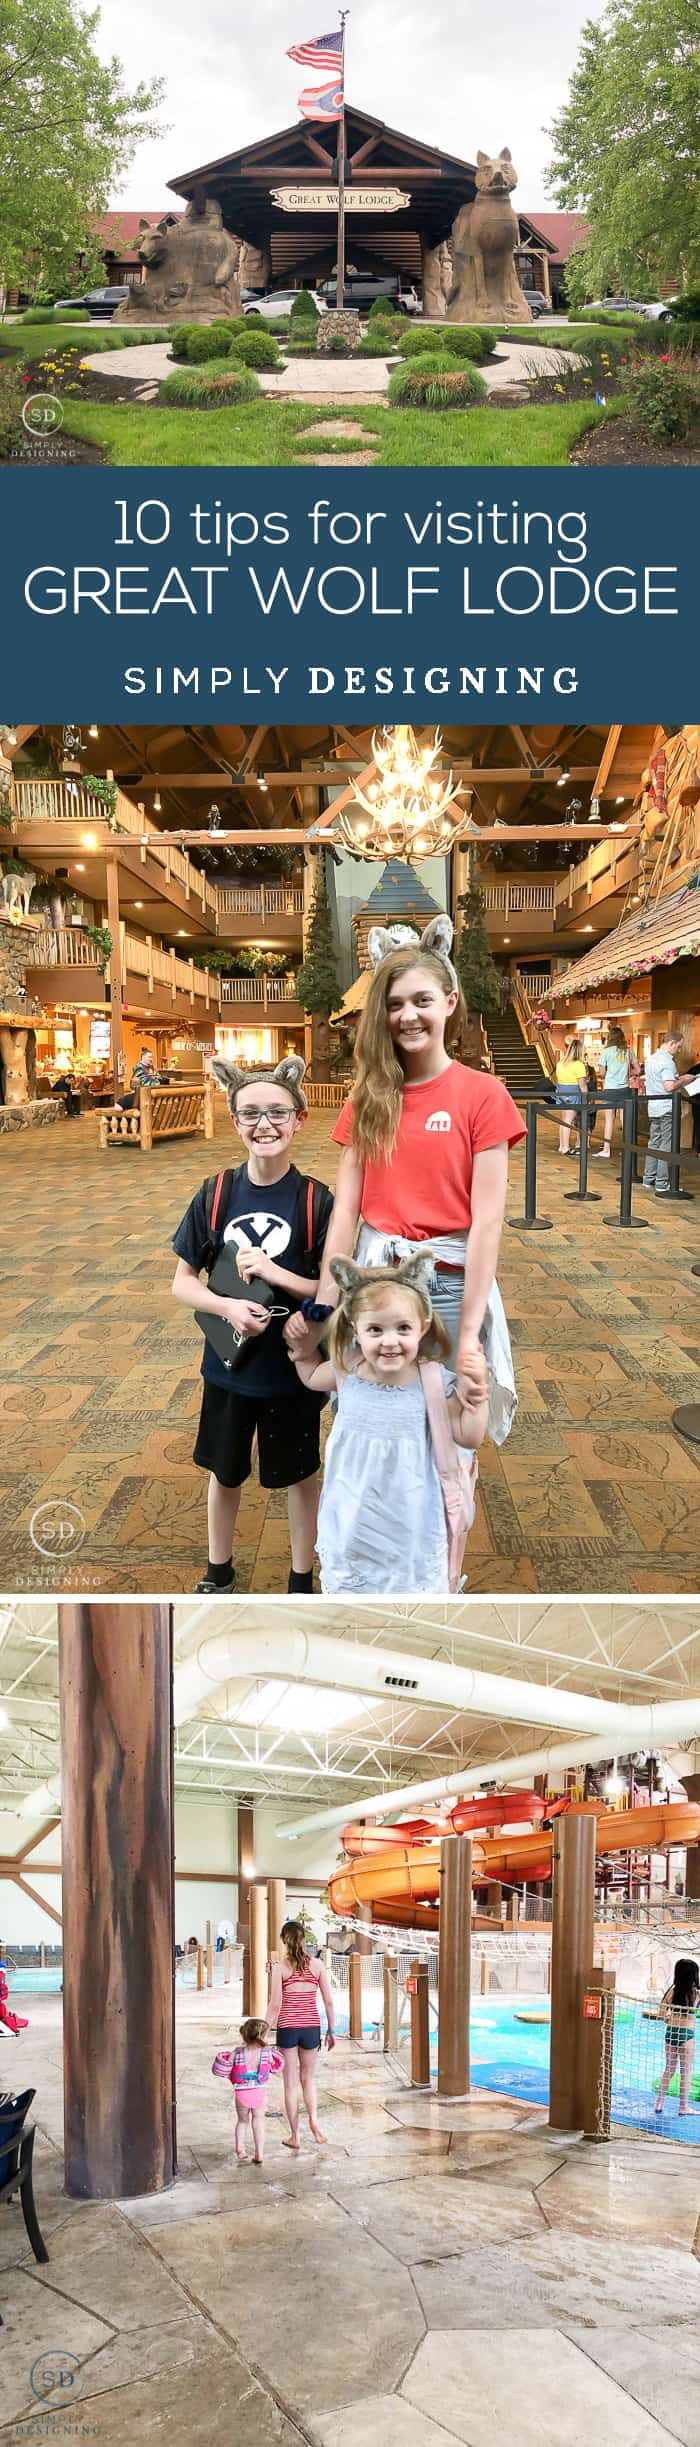 10 Tips for Visiting Great Wolf Lodge - If you are longing for some special family time plan an amazing family-centered vacation with these 10 Tips for Visiting Great Wolf Lodge